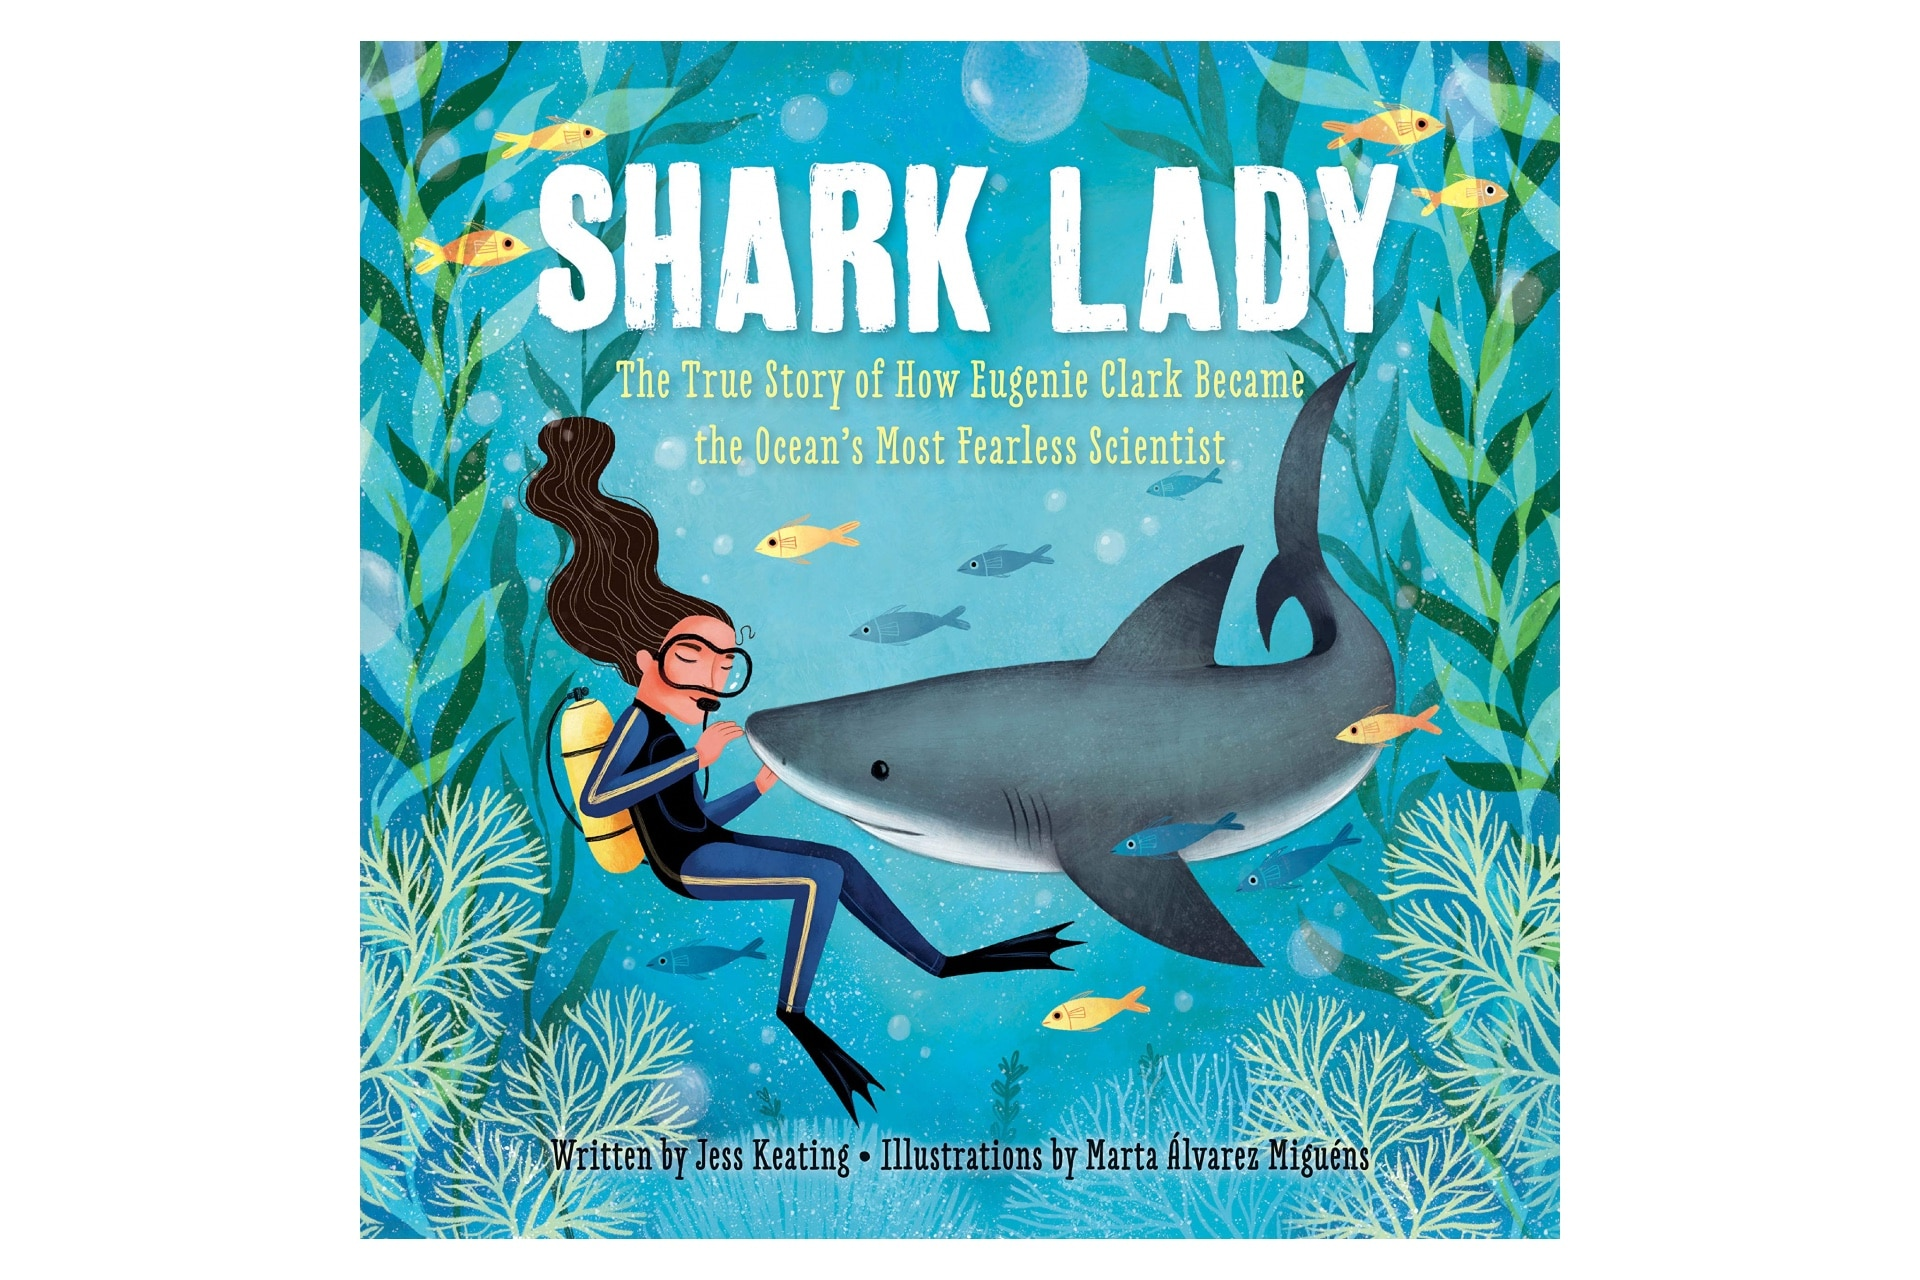 book cover of a woman scuba diver under water with a friendly shark